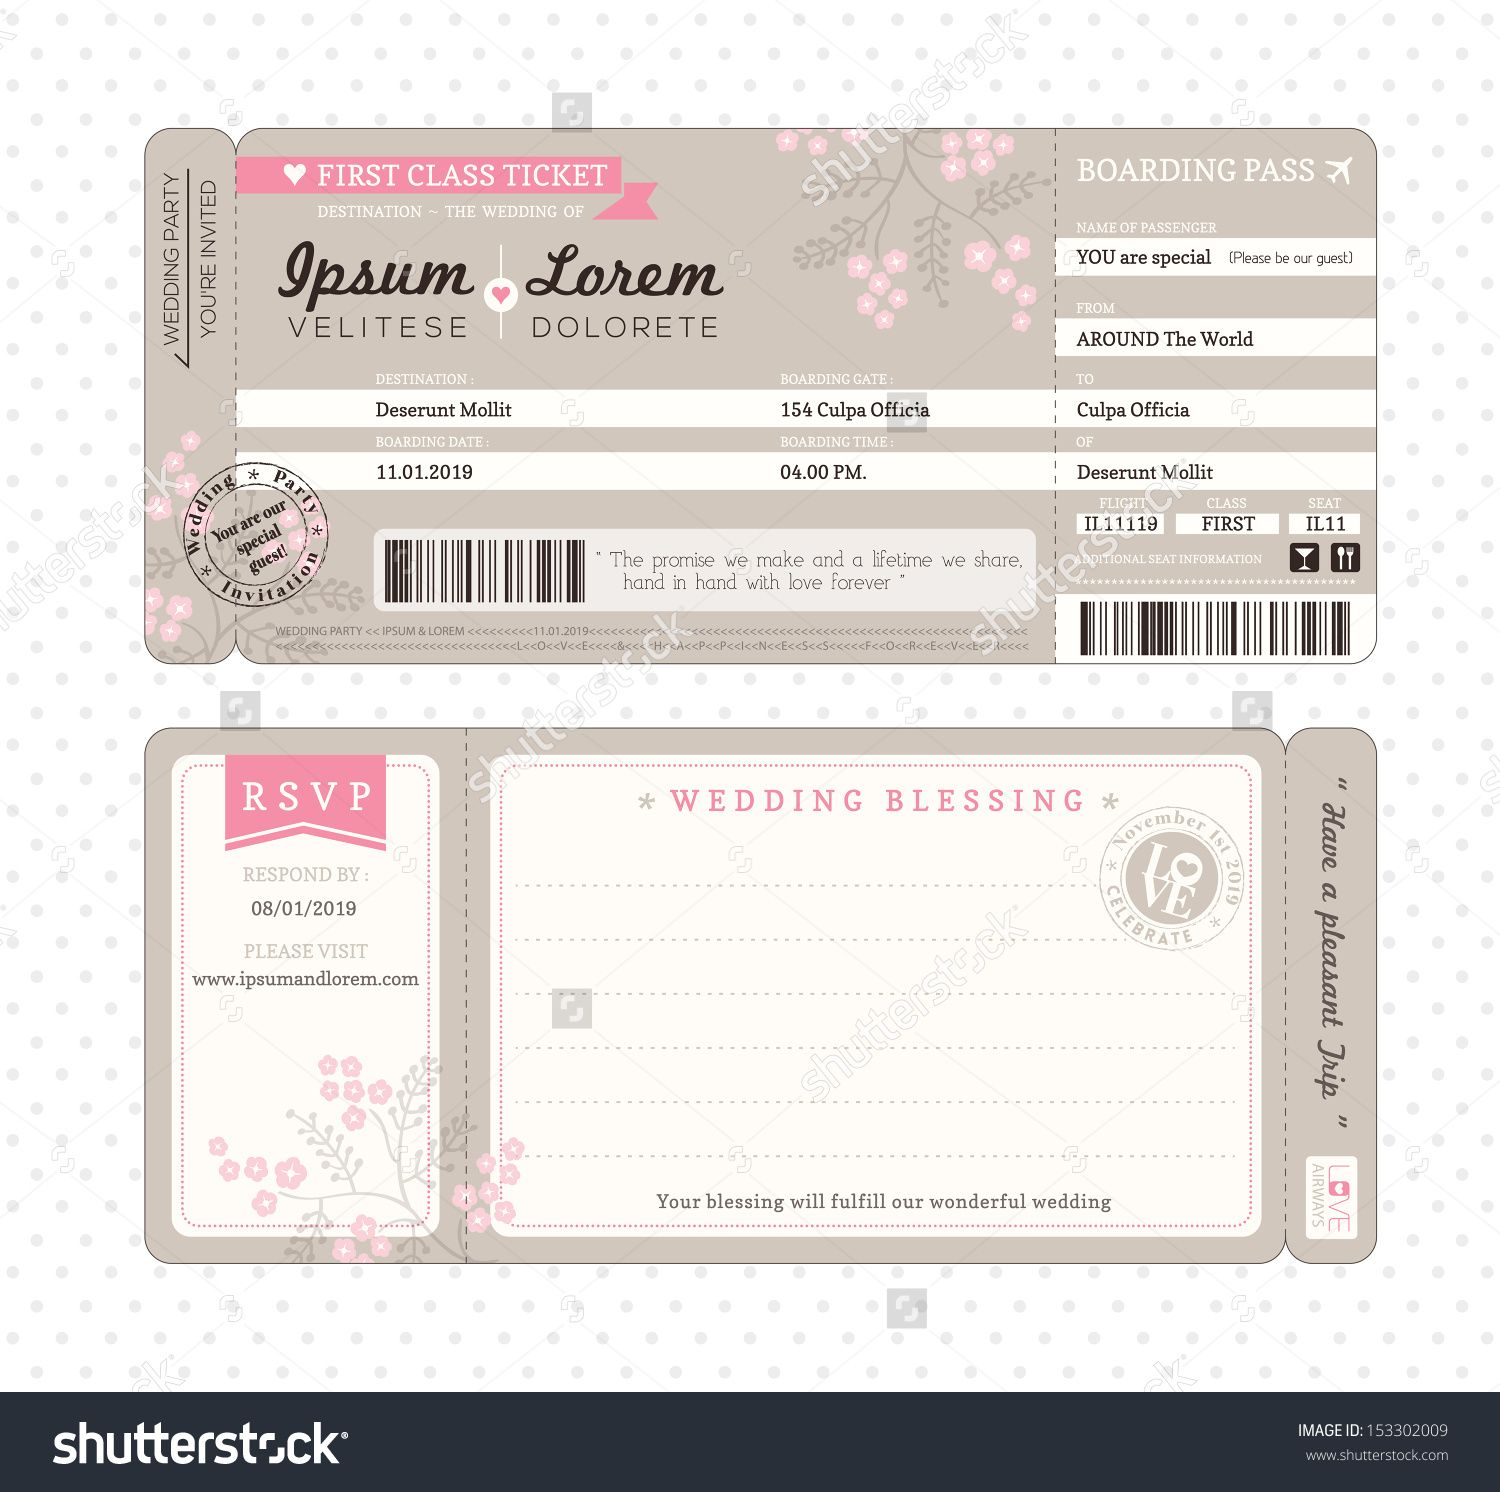 Boarding Pass Ticket Wedding Invitation Template – Airline Ticket Template Free